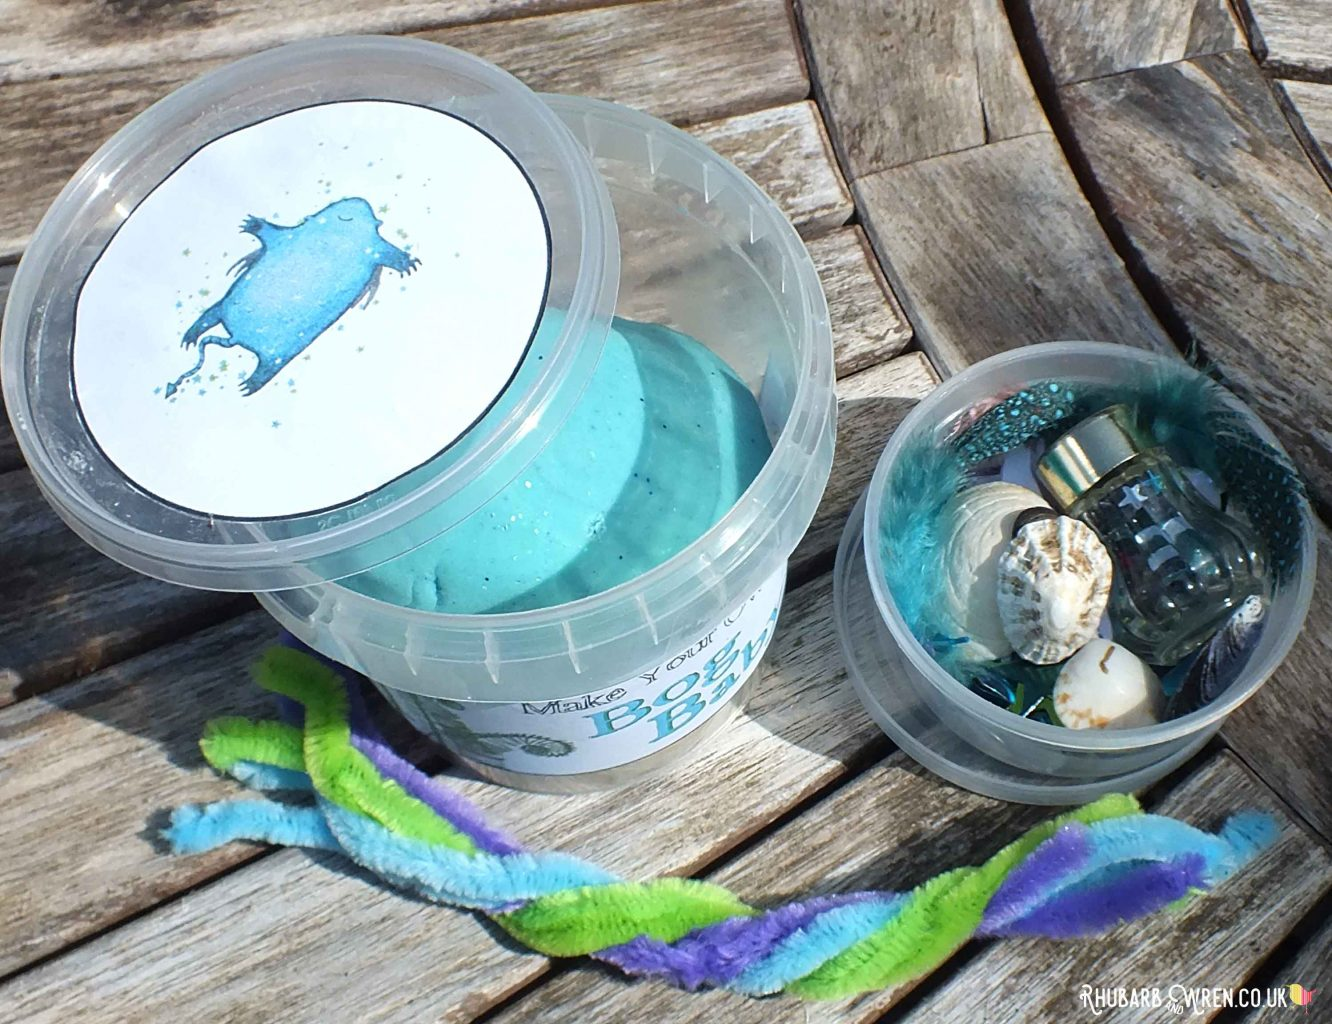 home-made bog baby play dough kit with decorations